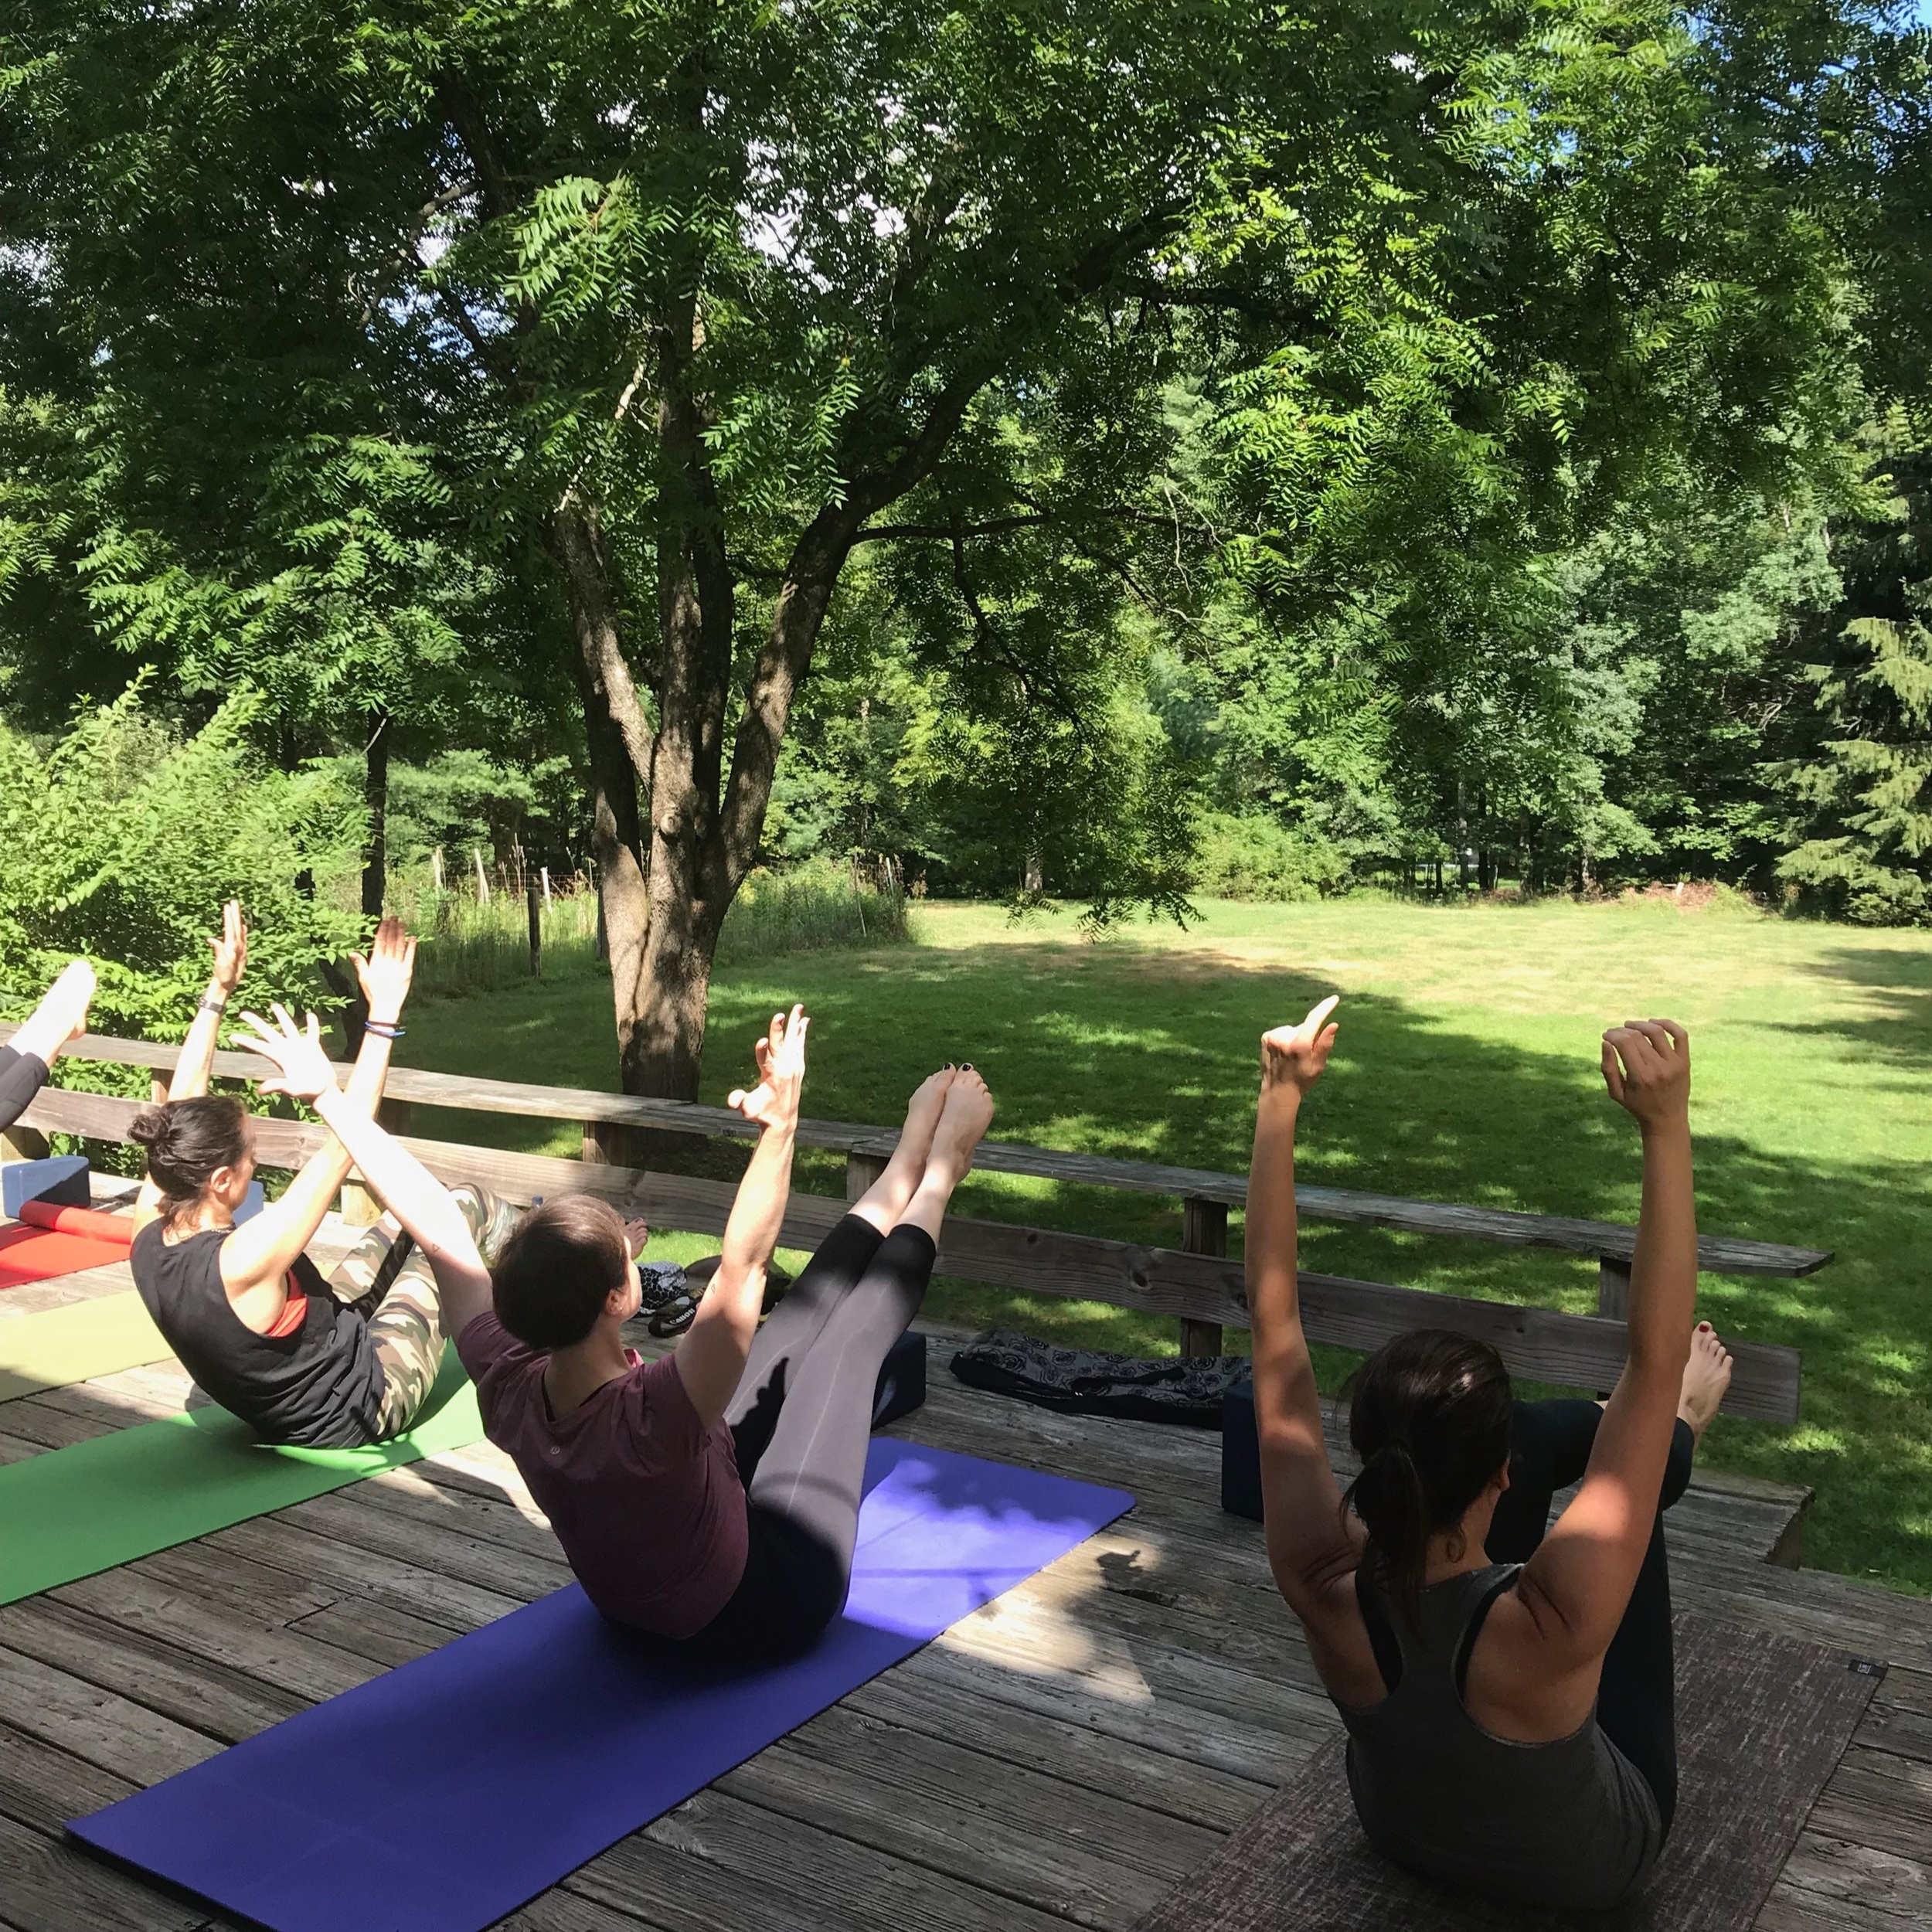 the berry method retreat - June 5-7Hudson Valley, NYMindfulness & functional movementHosted by Kelly Berry